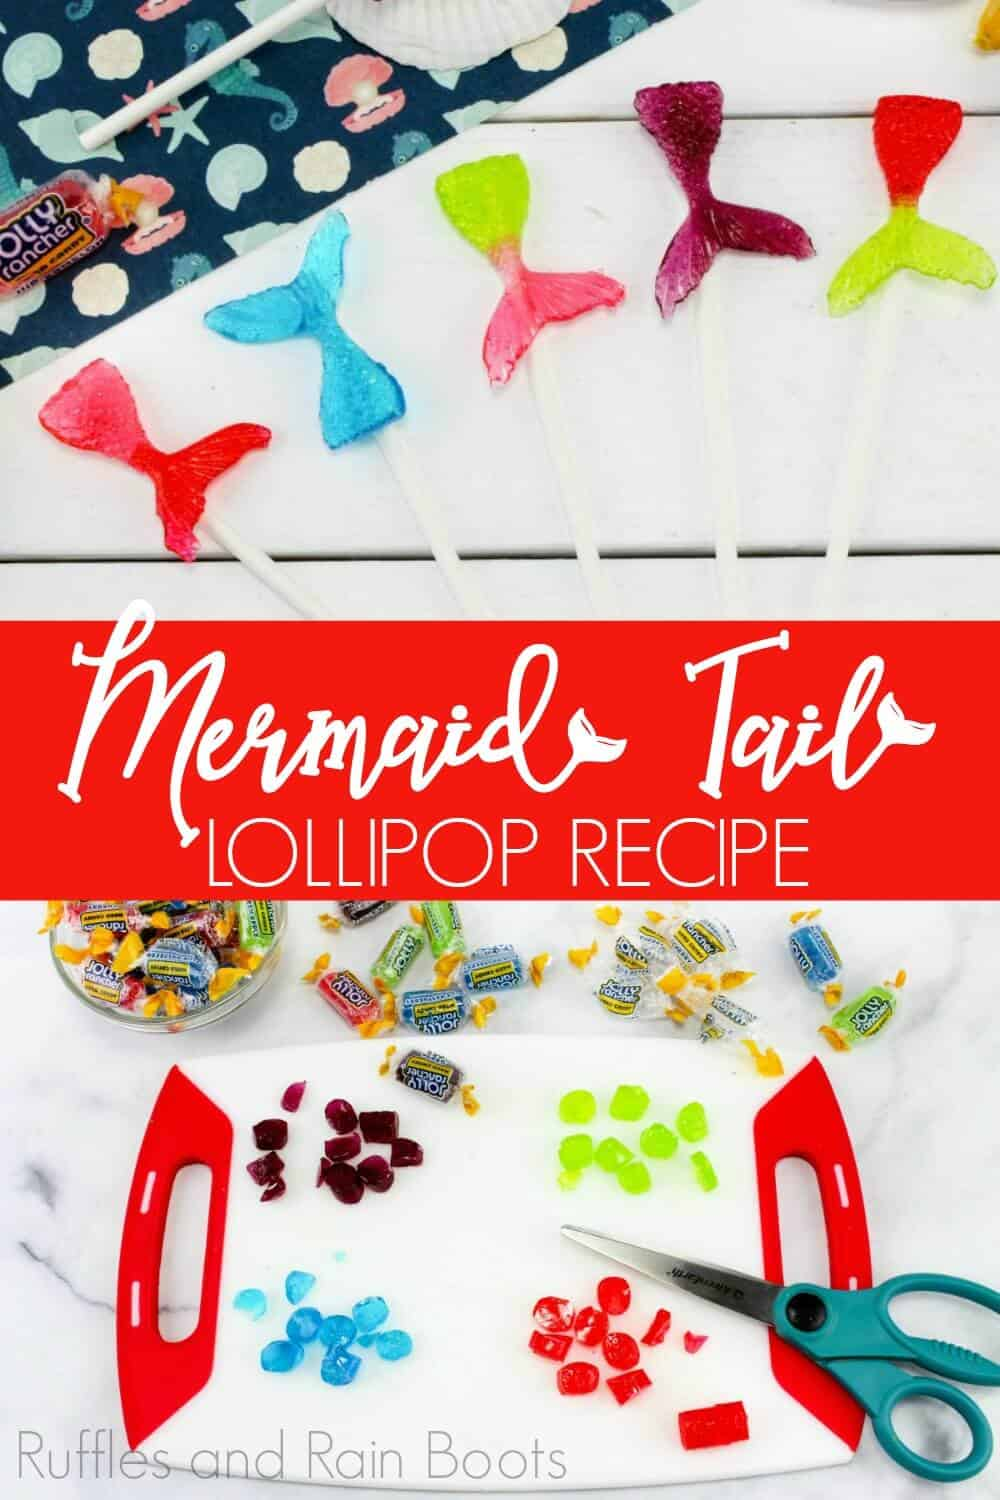 Photo collage of mermaid tail lollipops and photo tutorial collage for how to make mermaid suckers with text which reads mermaid tail lollipop recipe